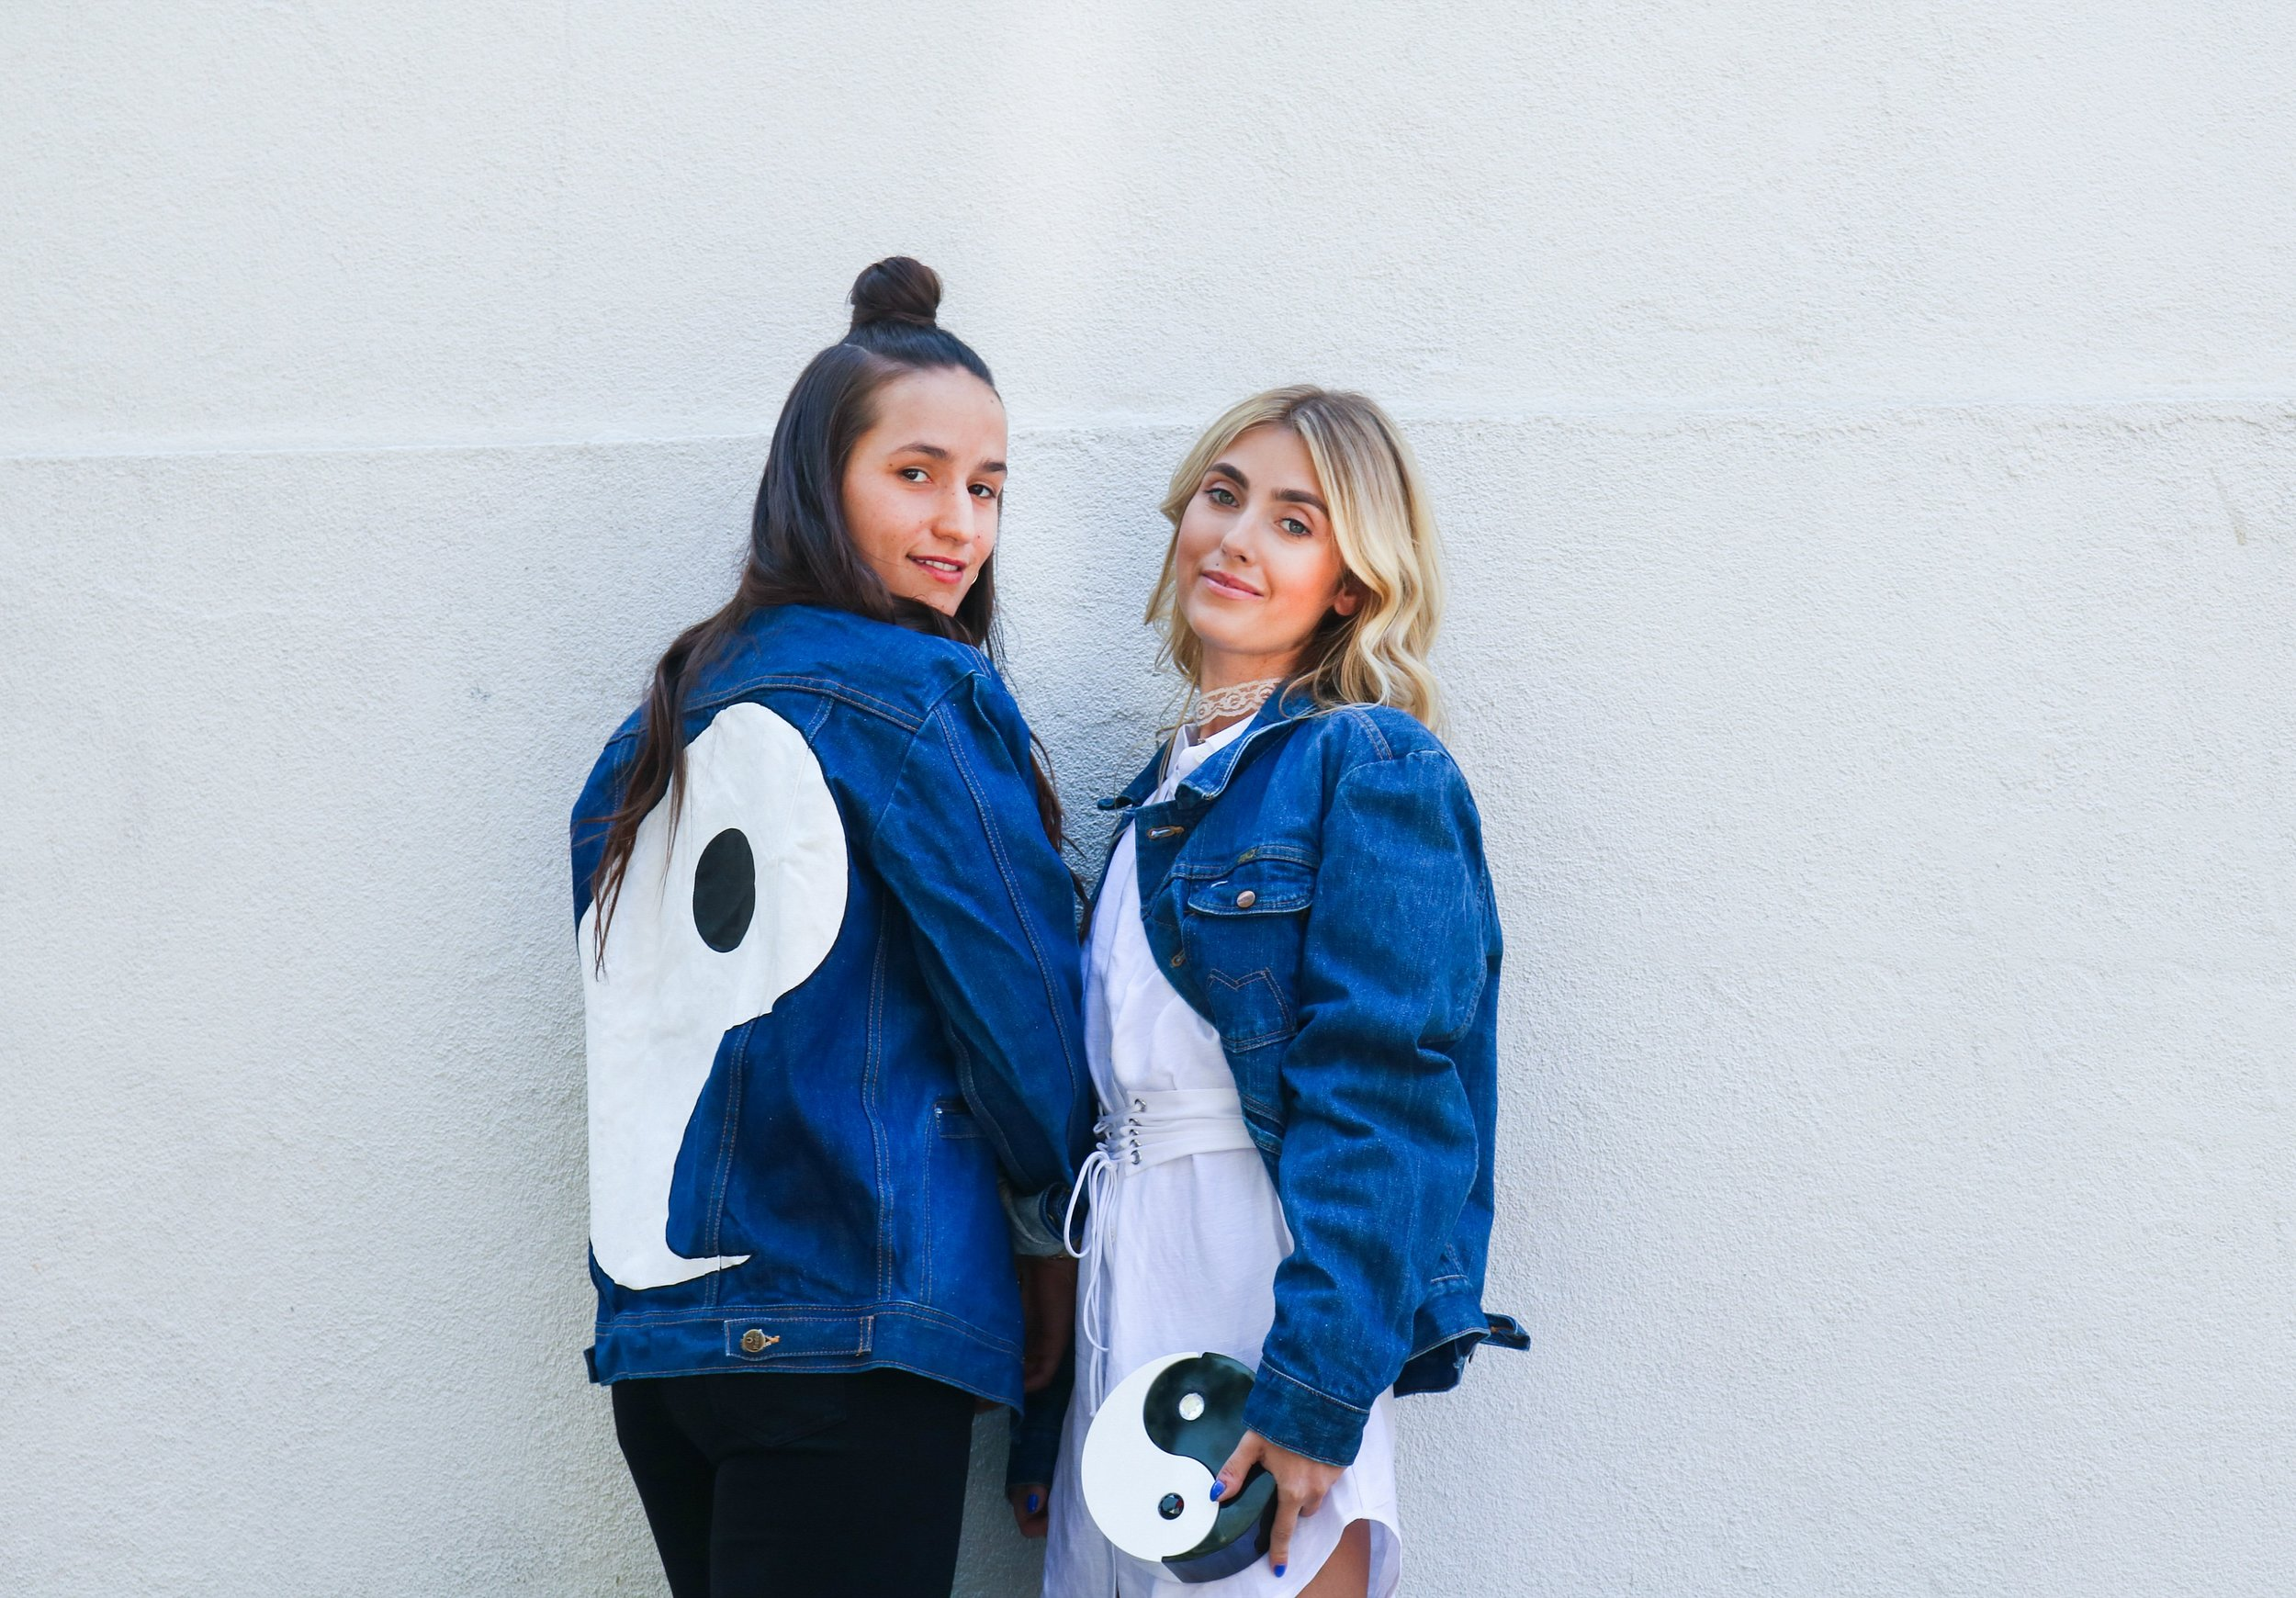 SOPHIE BICKLEY AND CHARLOTTE BICKLEY YIN 2MY YANG SISTER BLOGGERS ONE YEAR POST